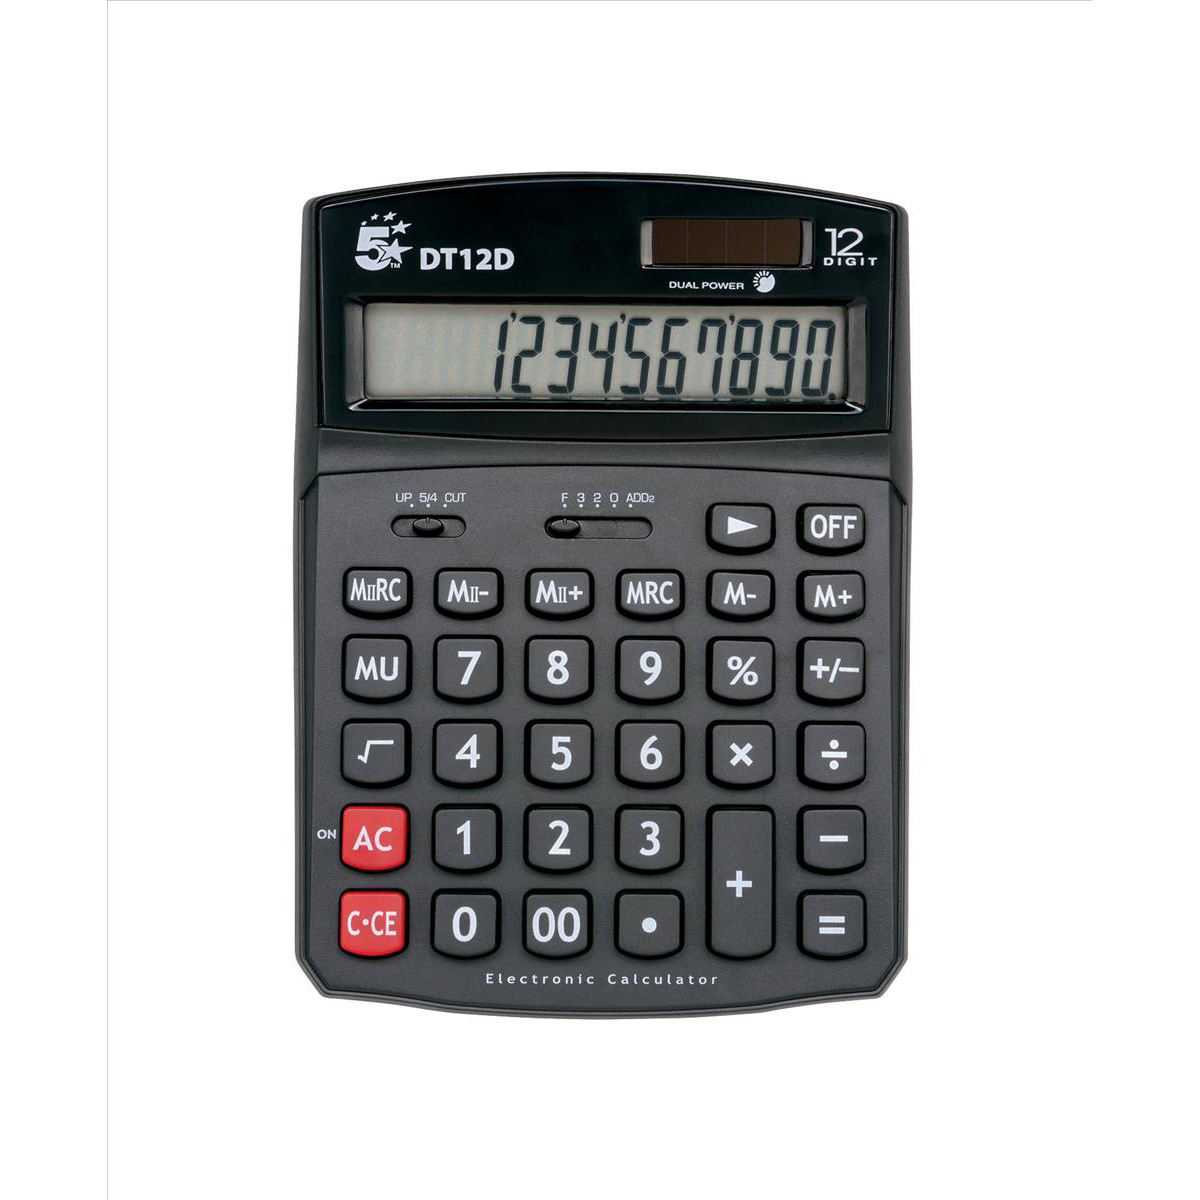 Calculators 5 Star Office Desktop Calculator 12 Digit 2x3 Key Memory Battery/Solar Power 91x11x125mm Black